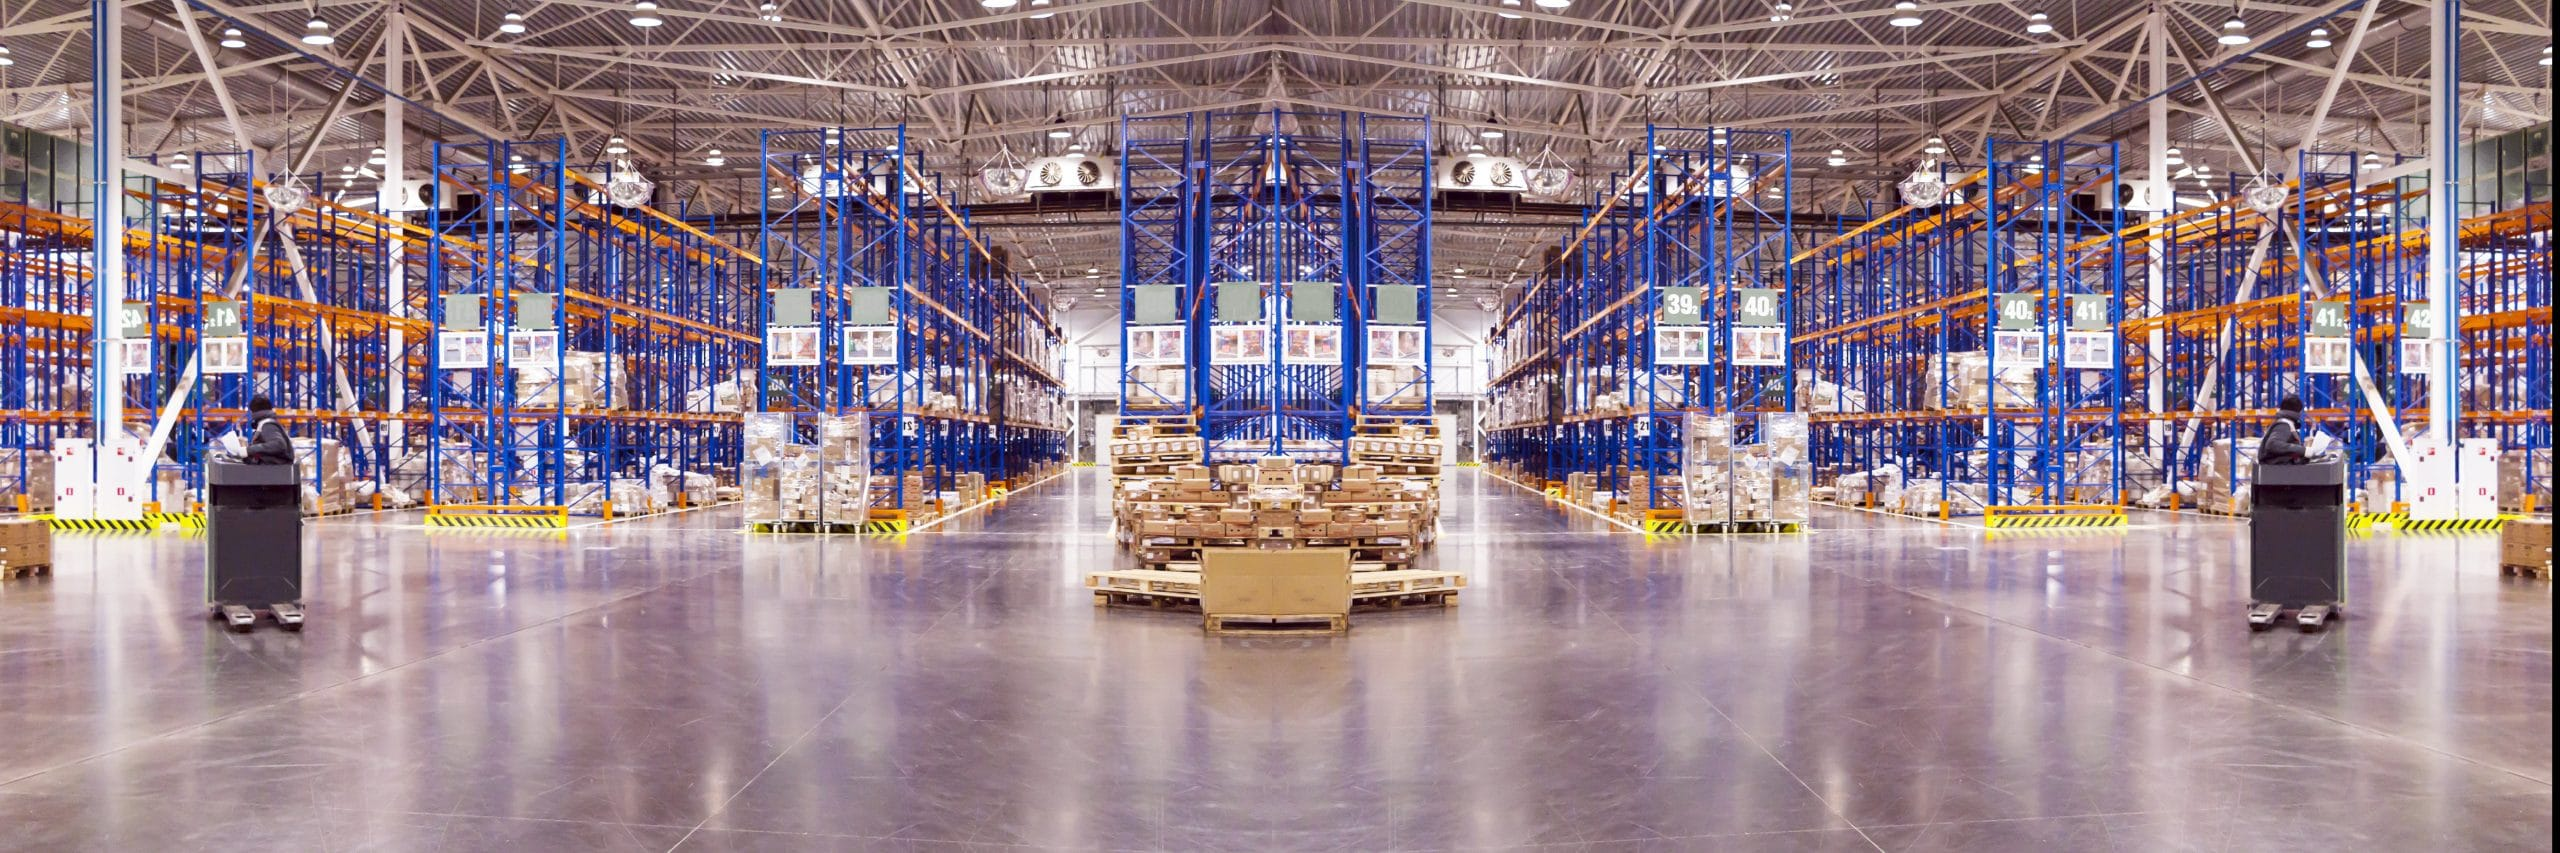 Typical storage, warehouse interior. Selective focus. Wide panoramic collage. Industrial background.